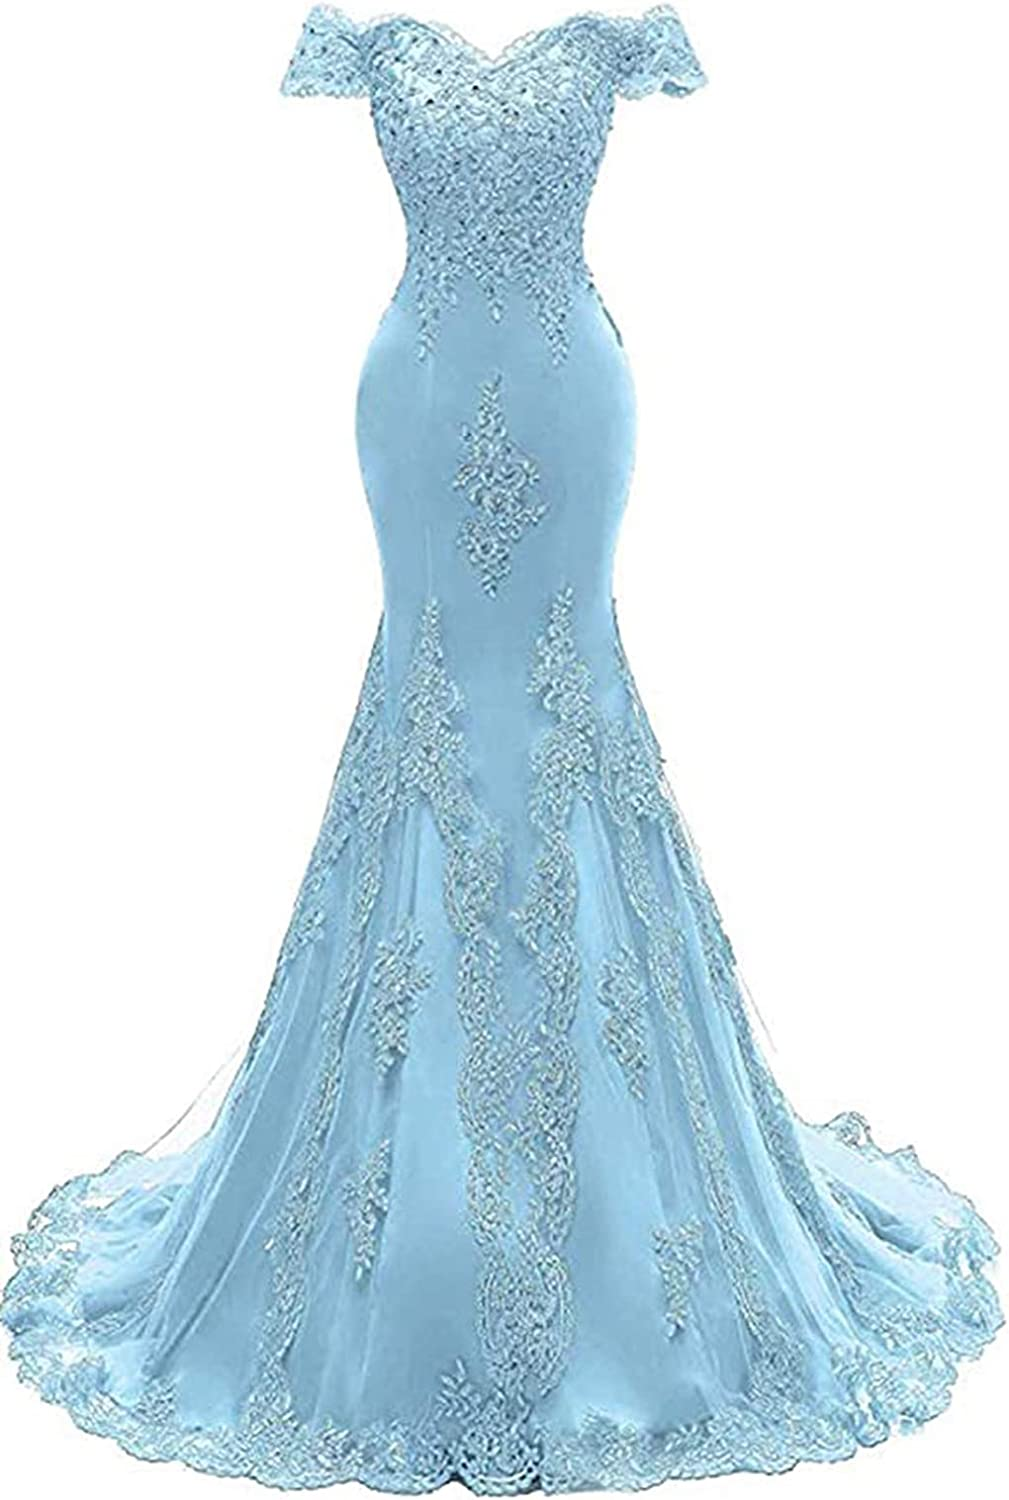 New product type Awishwill Super intense SALE Women's Off Shoulder Prom Mermaid Appliqu Dresses Lace